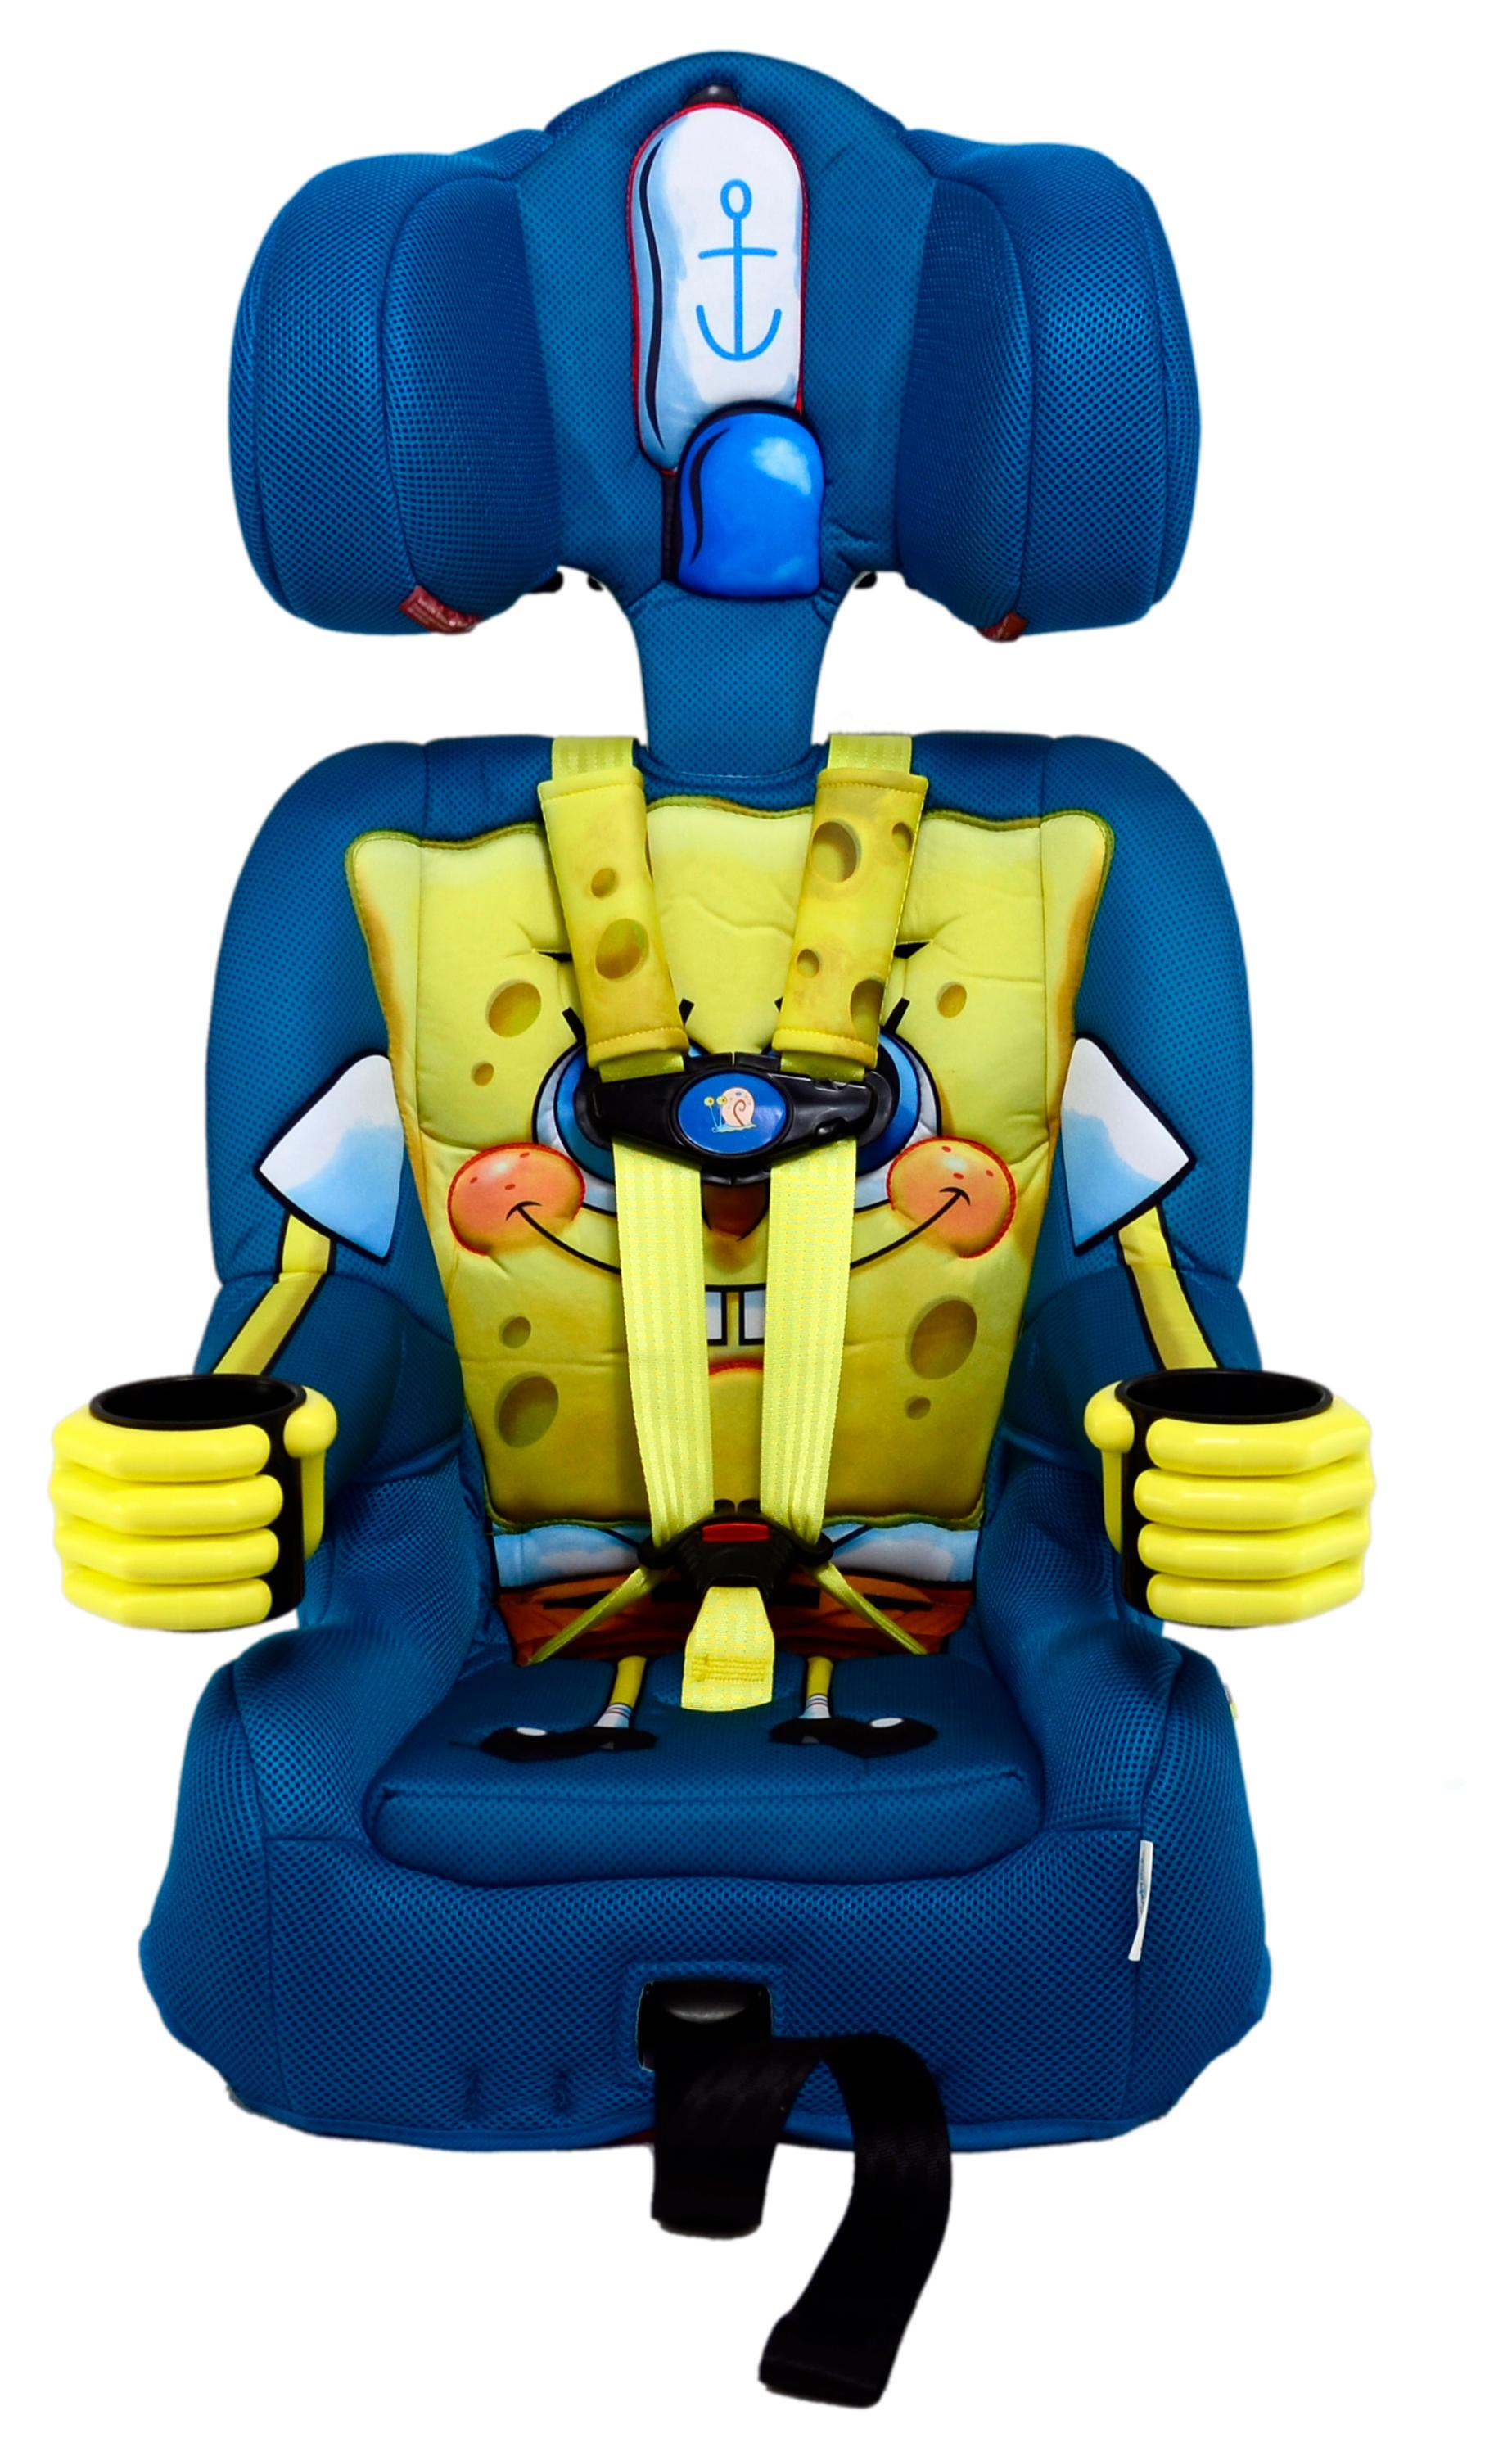 Il Fullxfull Og in addition Hulk  bination Booster Car Seat in addition X X as well Point Safety Harness Child Car Safety Seats Universal Toddler Car Seat Cushion Breathable Wholesale And as well Keekaroo Height Right Kids Chair  fort Cushion Natural. on 5 point harness toddler car seat